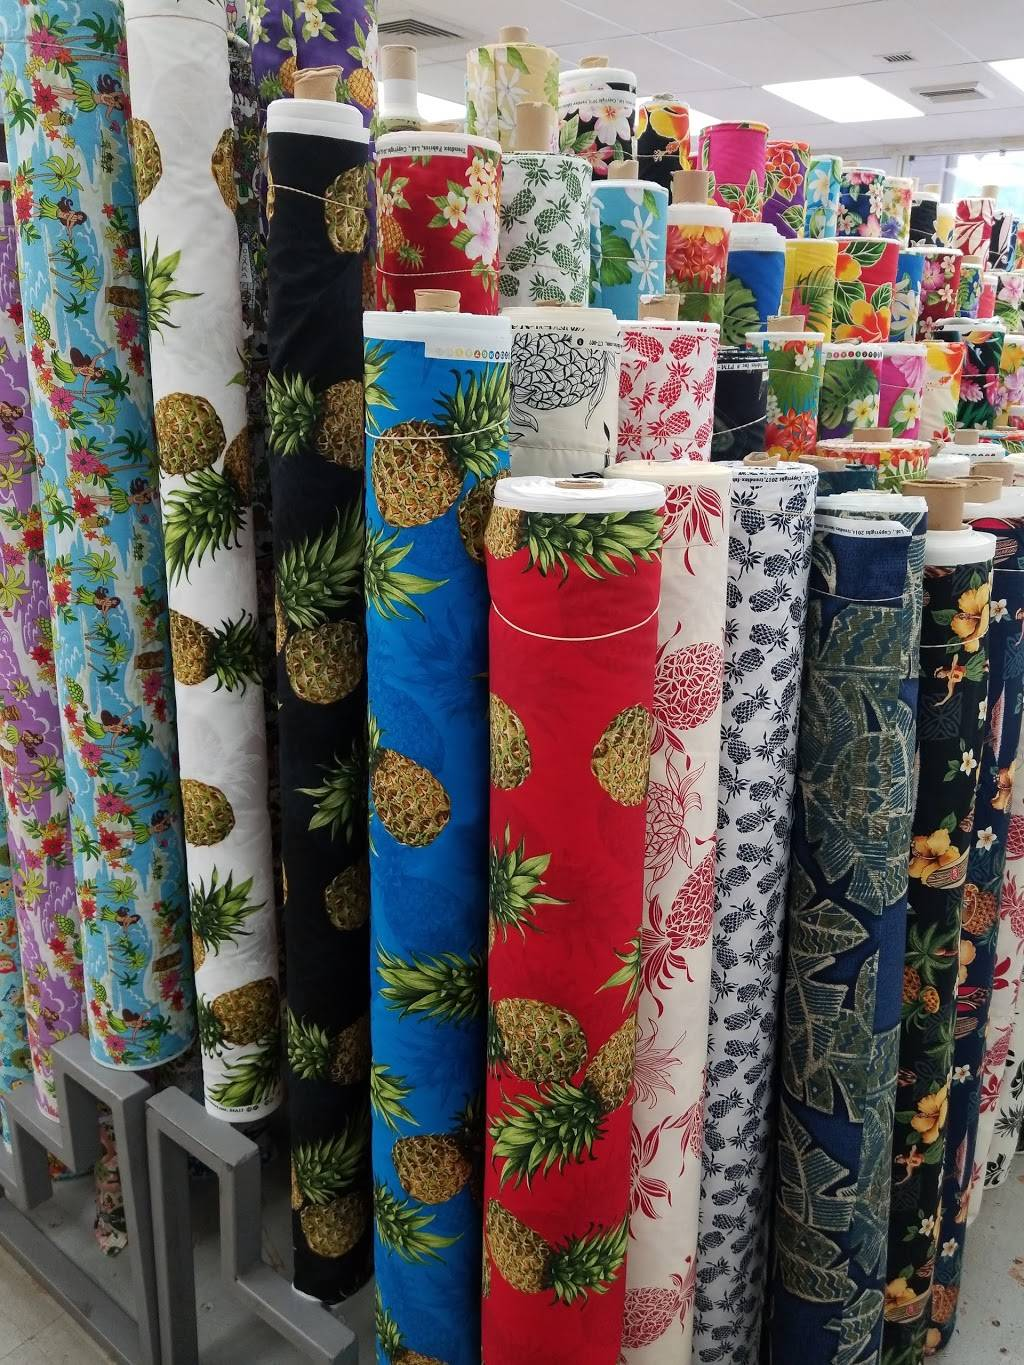 Fabric Mart - home goods store  | Photo 9 of 10 | Address: 45-681 Kamehameha Hwy, Kaneohe, HI 96744, USA | Phone: (808) 234-6604